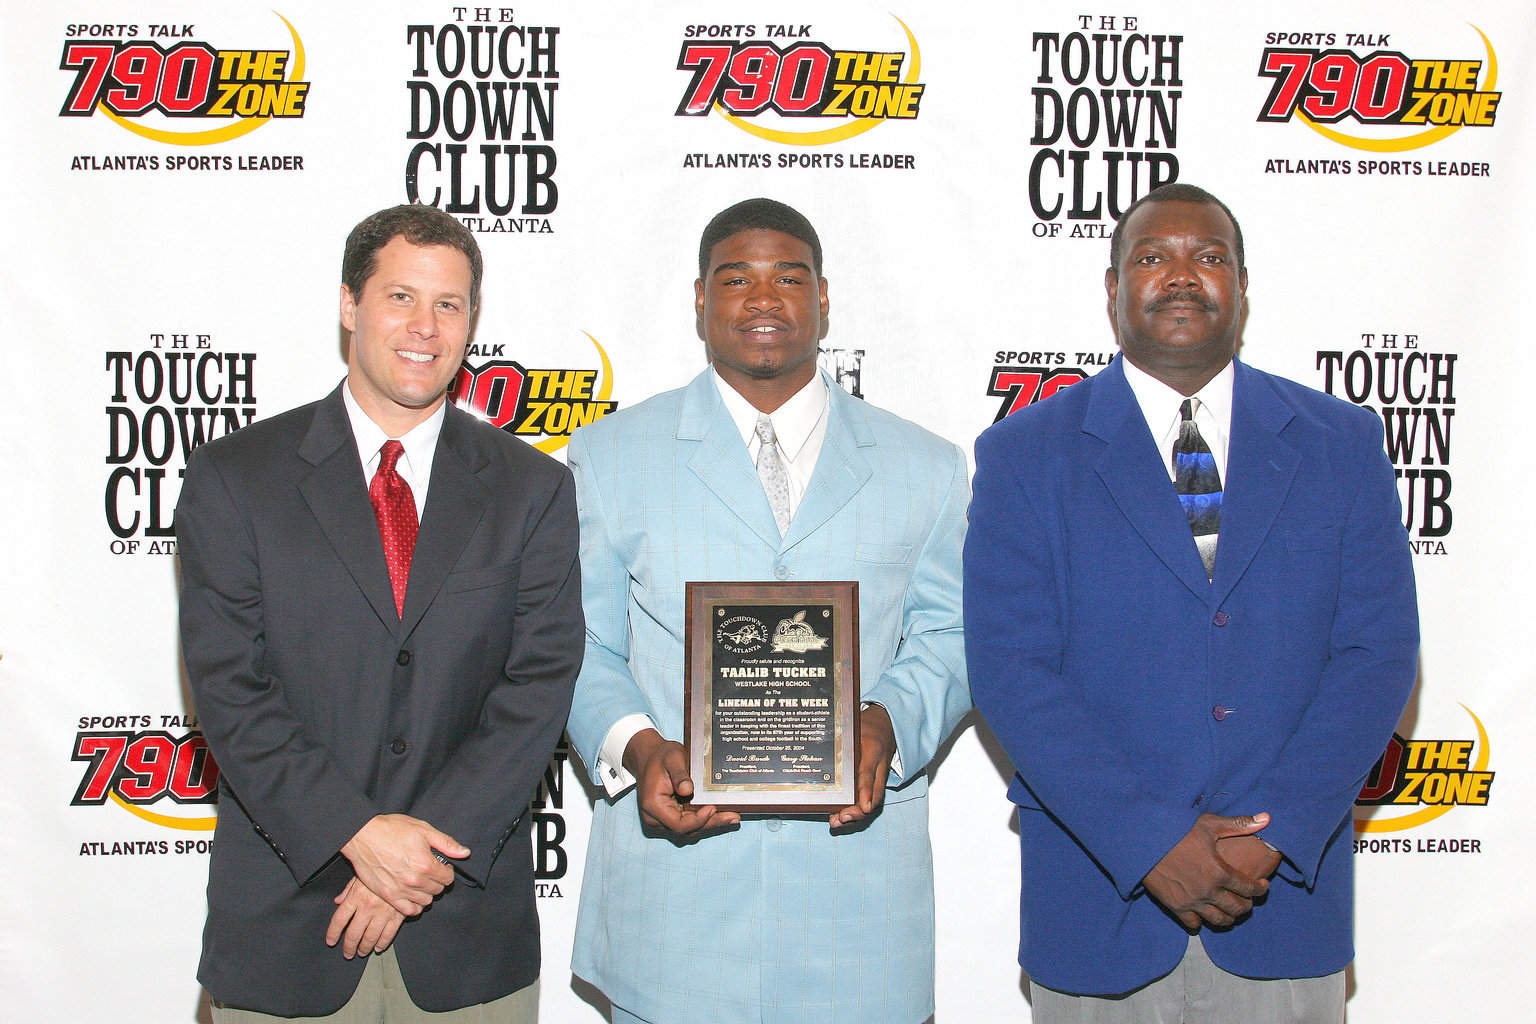 10-25-04 Taalib Tucker with Westlake coach Dallas Allen